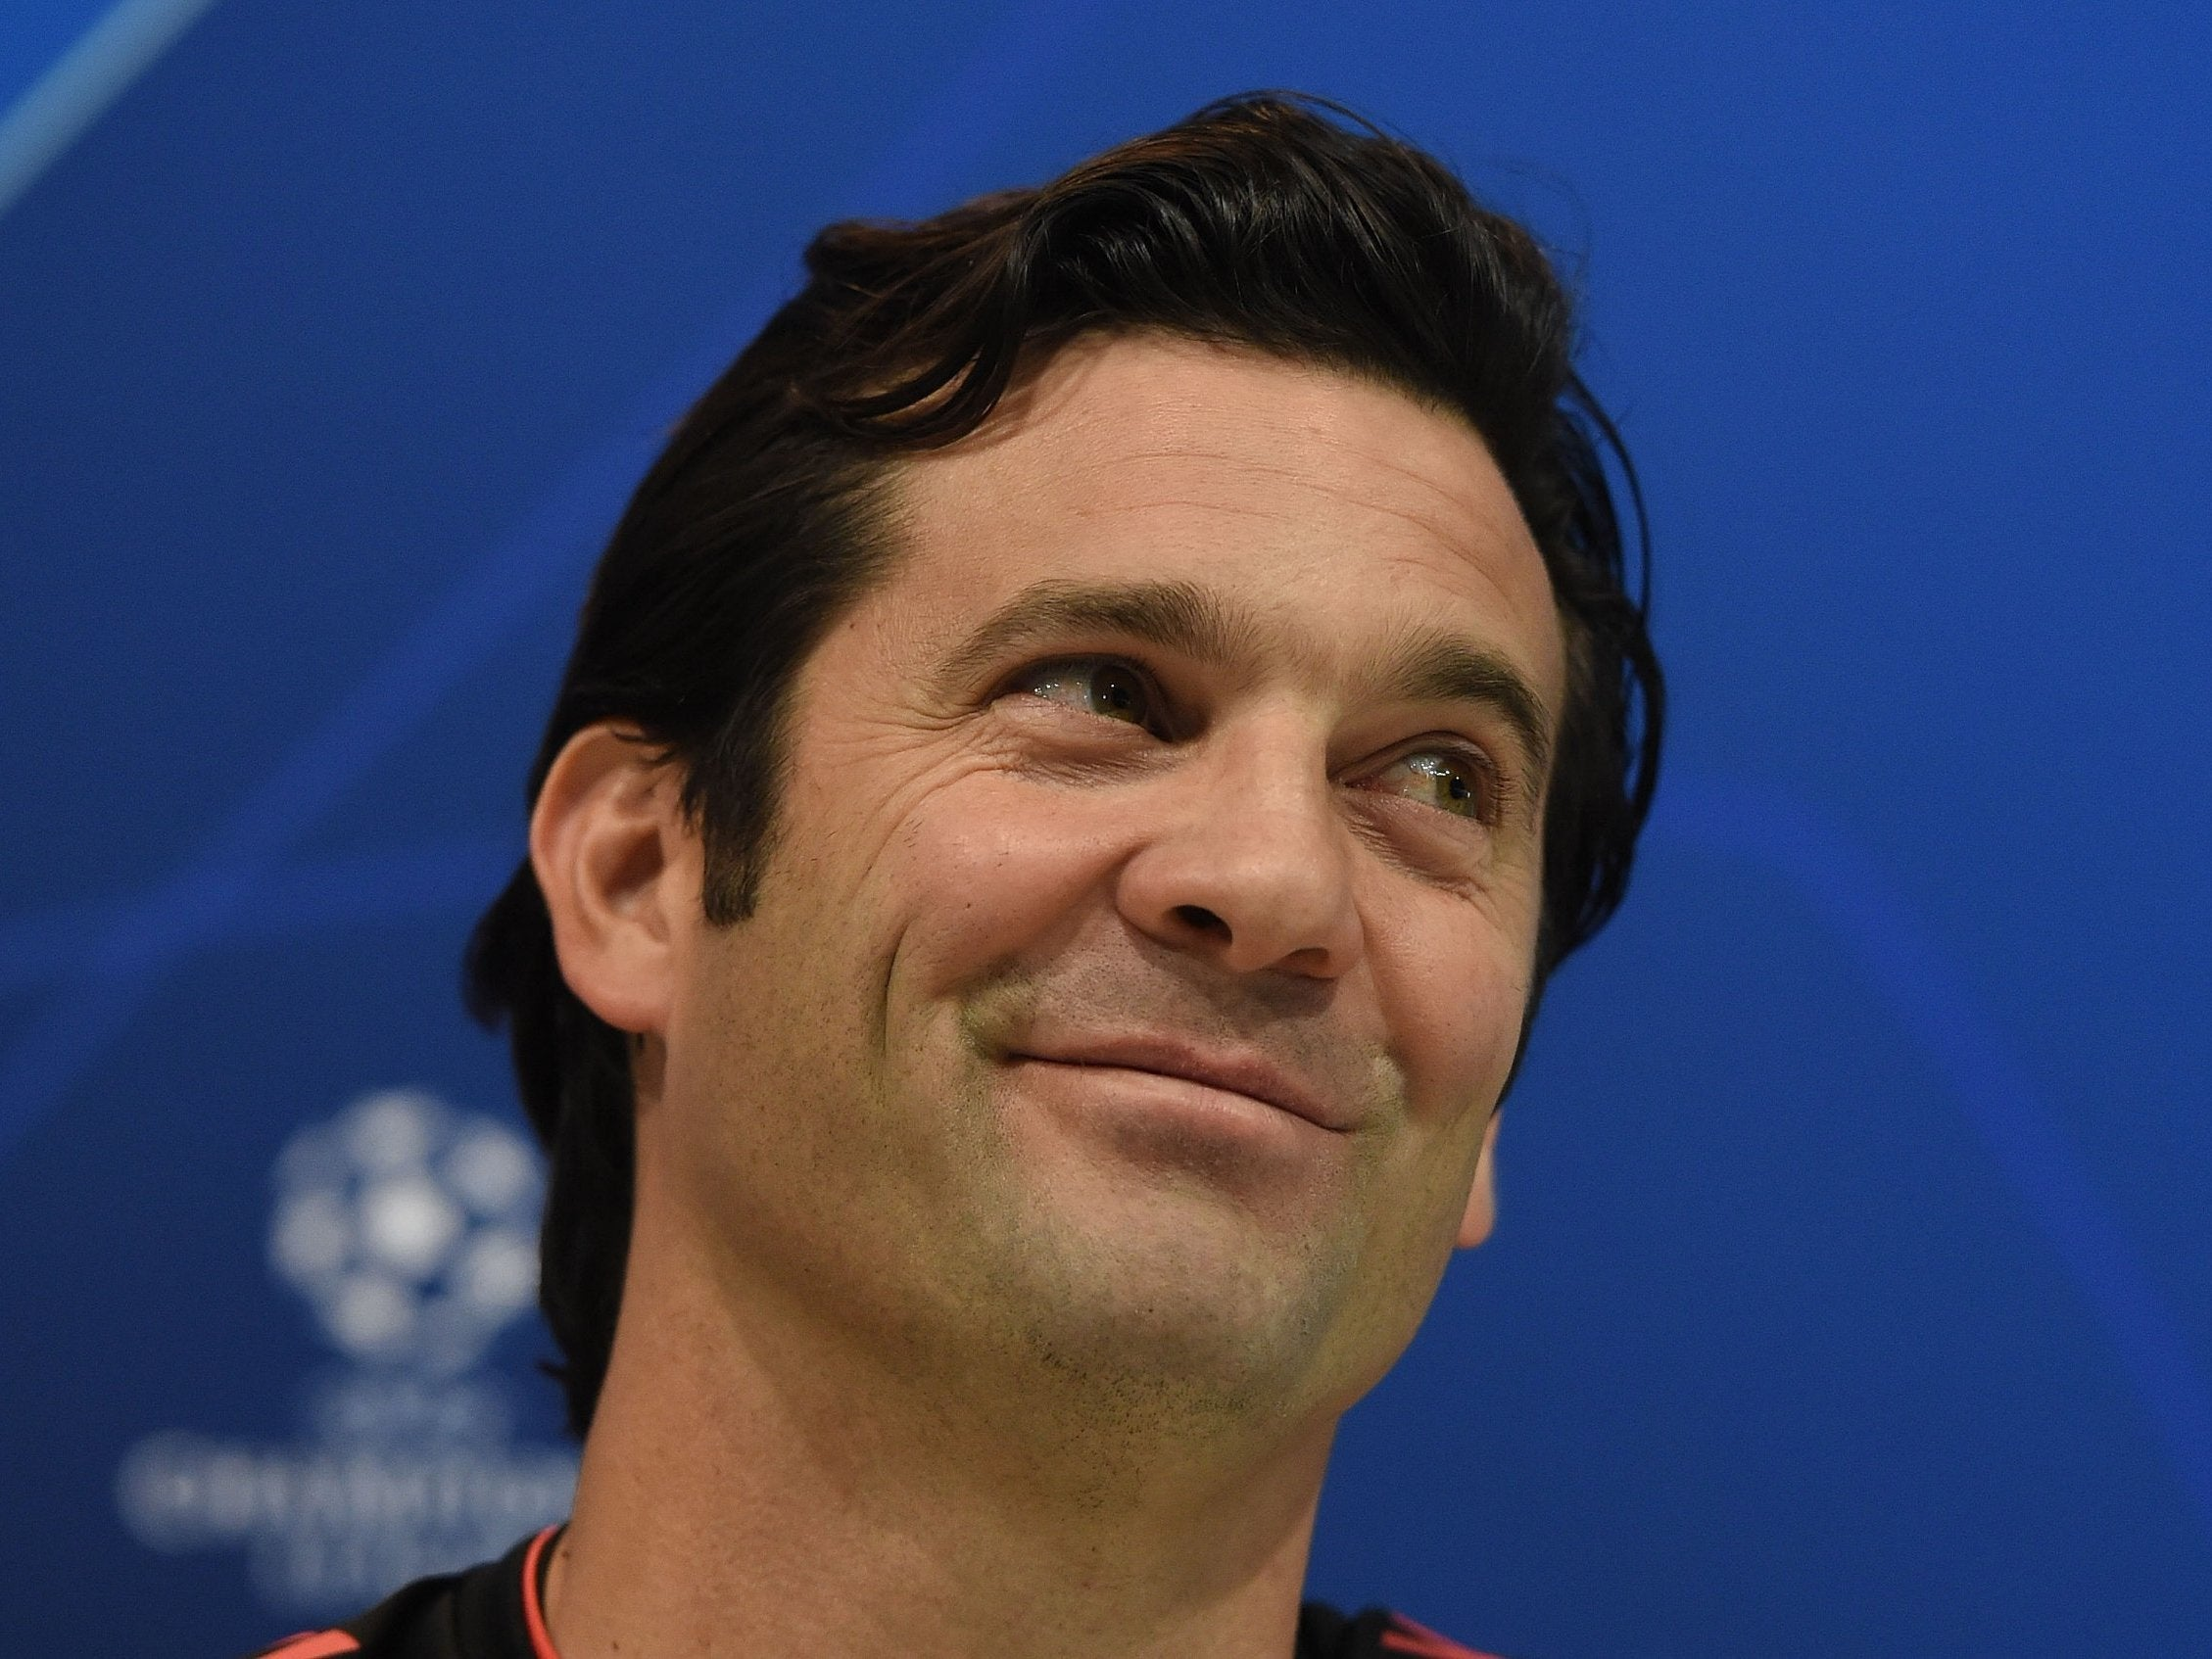 Jose Mourinho: Real Madrid manager Santiago Solari uses